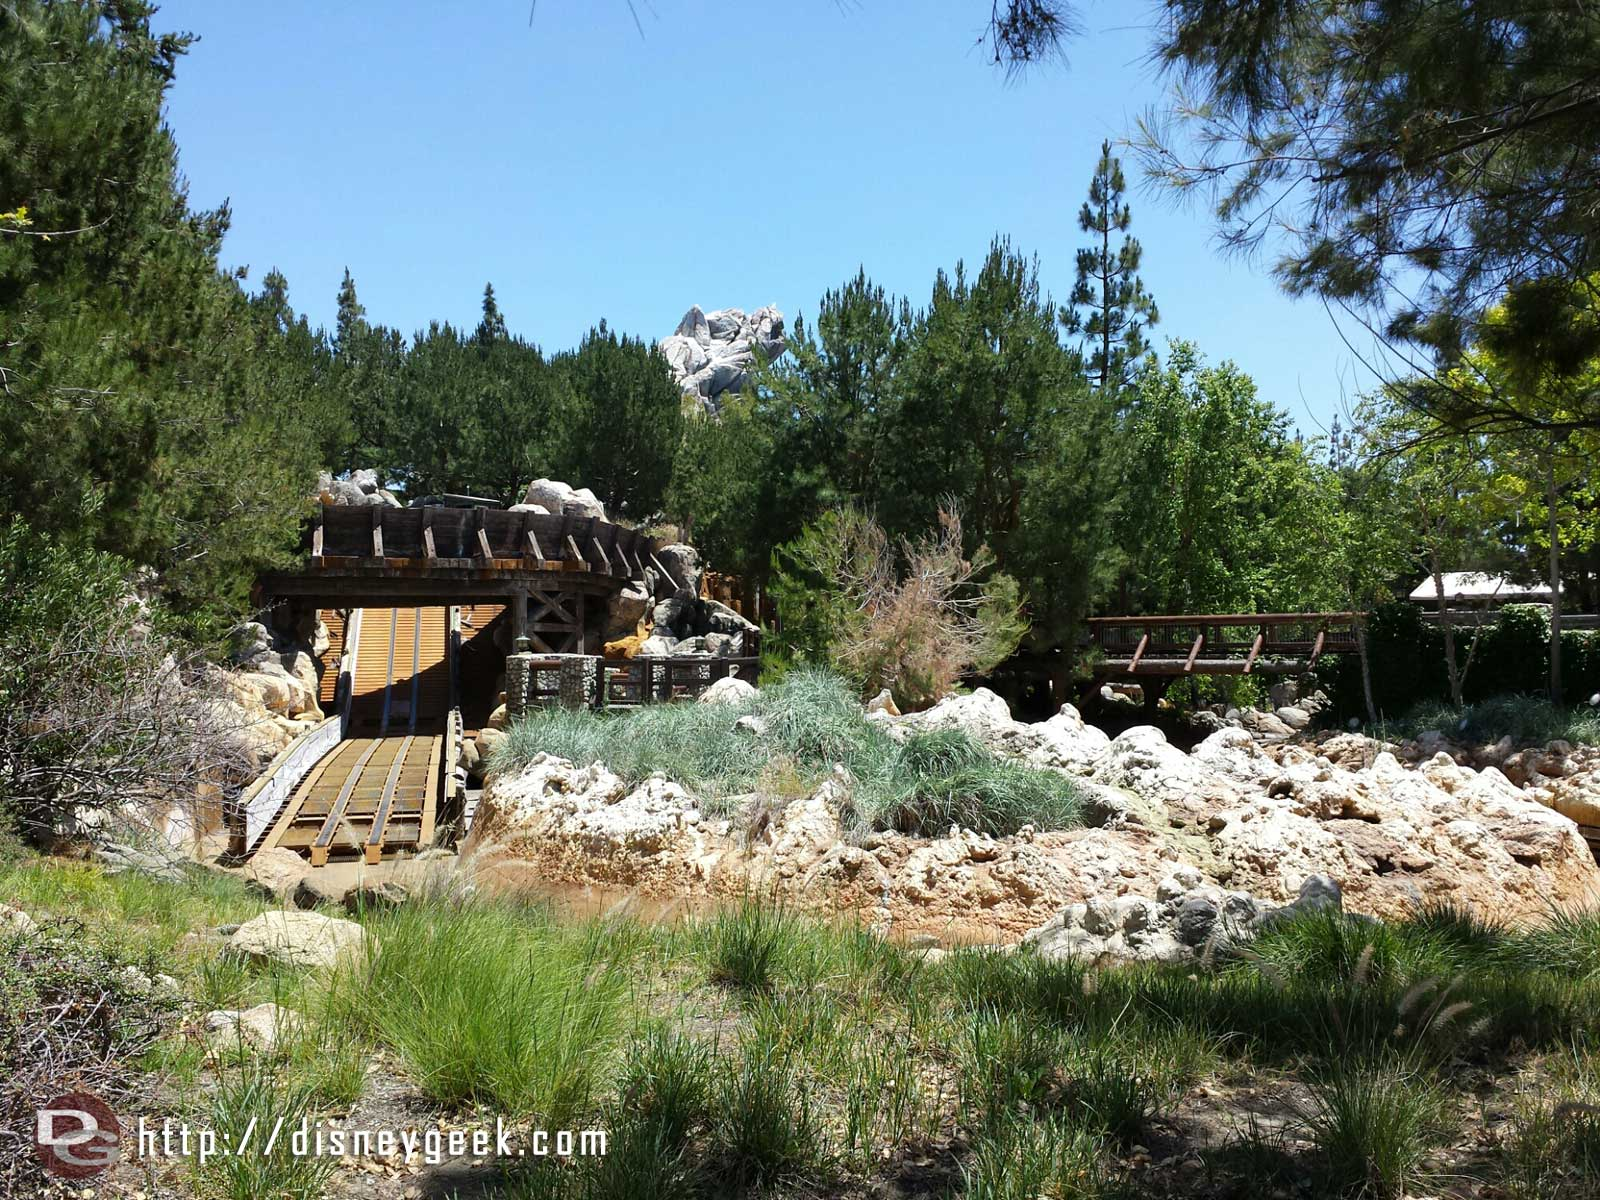 Grizzly River Run is still being worked on and closed